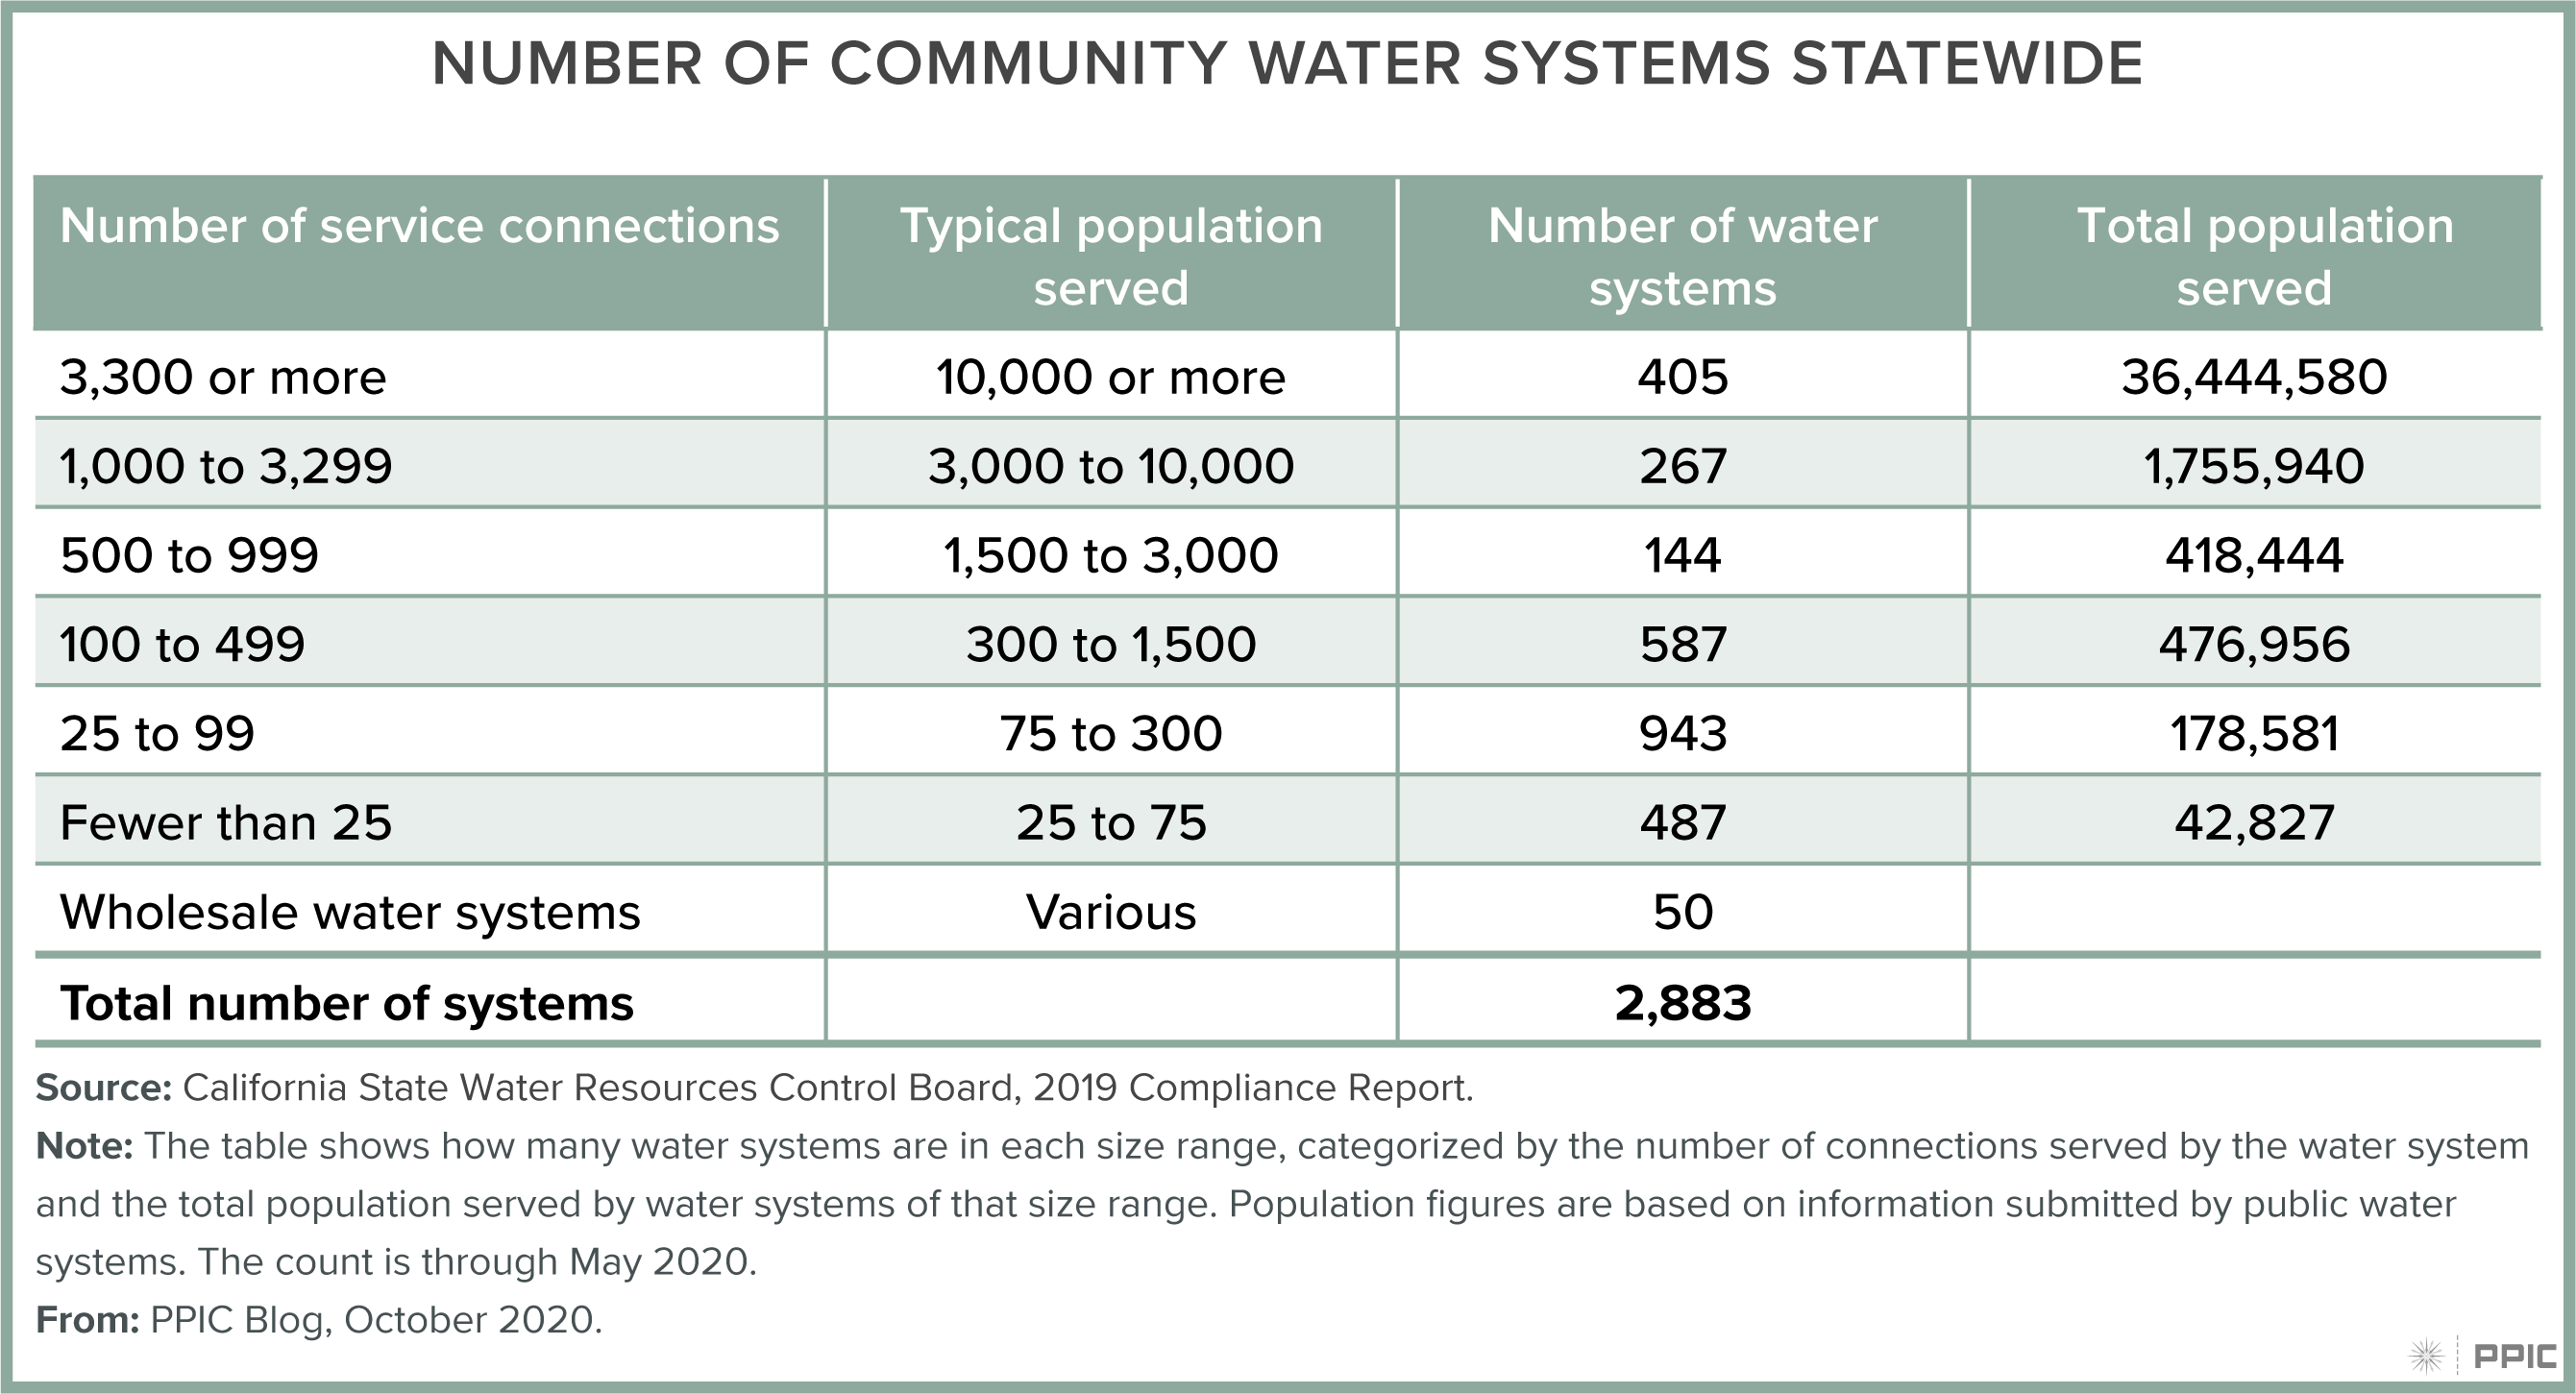 table - Most of California's Community Drinking Water Systems Are Small